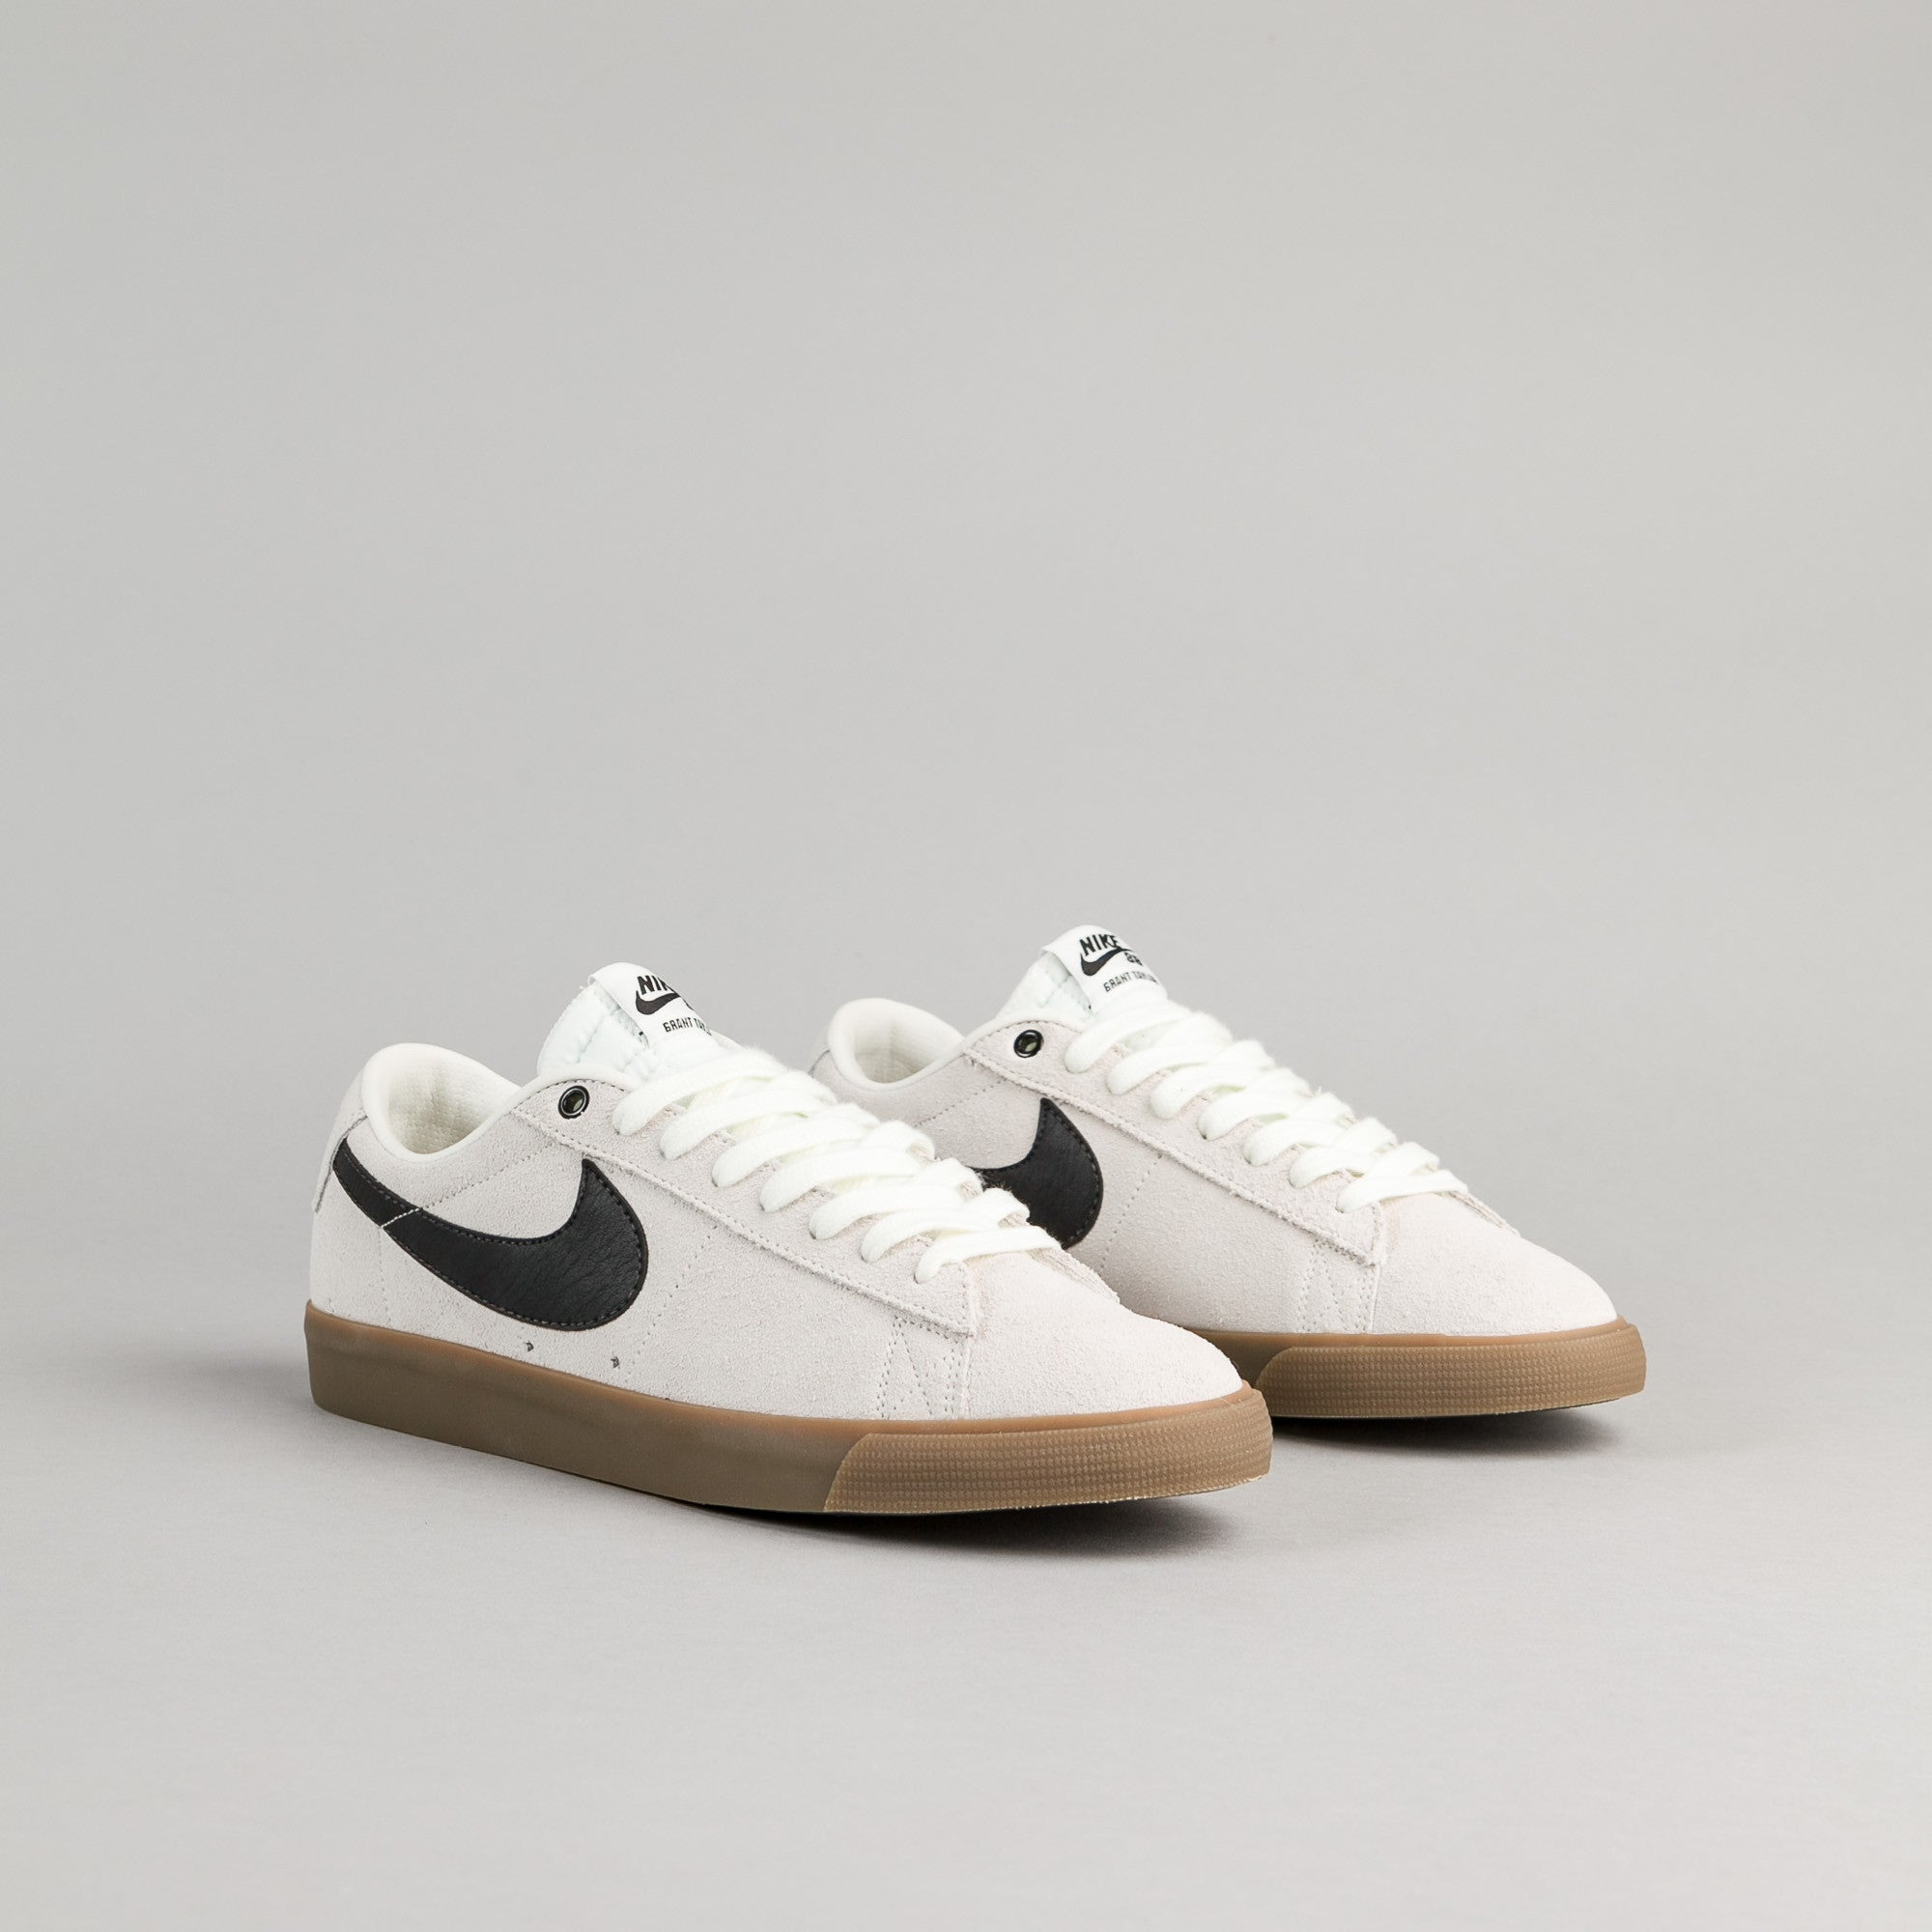 more photos 930f1 7c911 ... promo code for nike sb blazer low gt shoes ivory black gum light brown  211bd 244b7